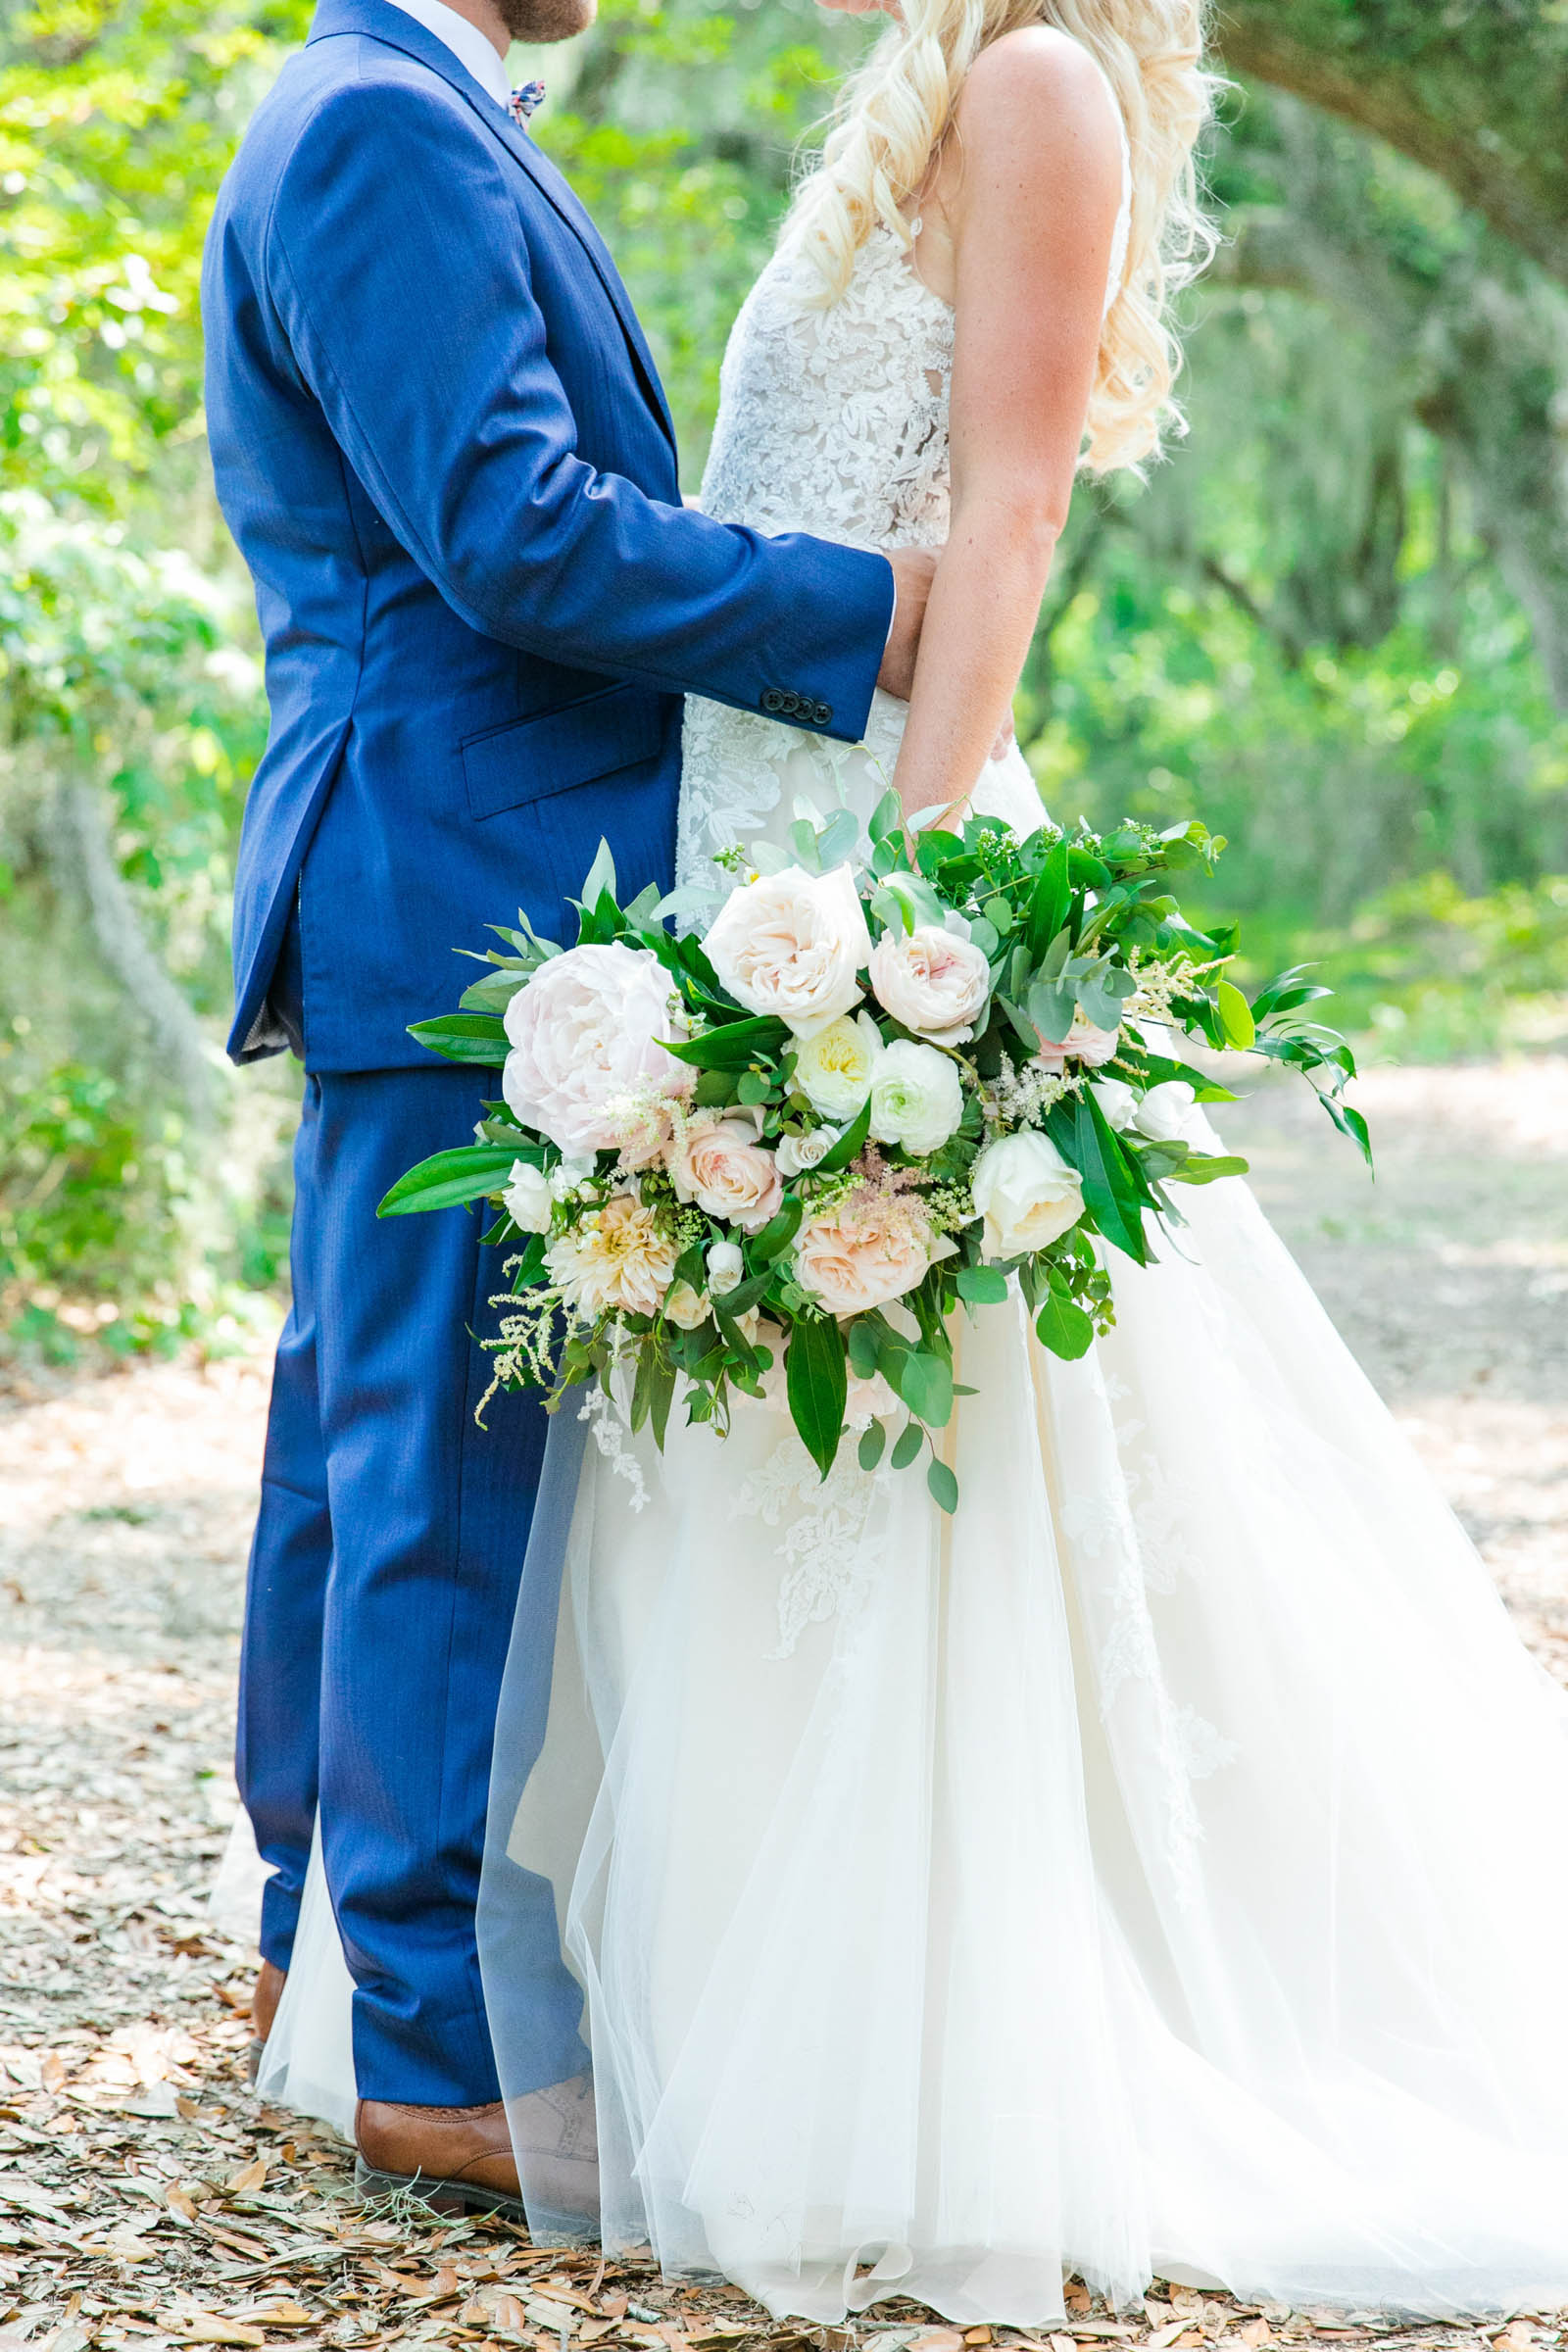 Couple portrait with bouquet - photo by Dana Cubbage Weddings